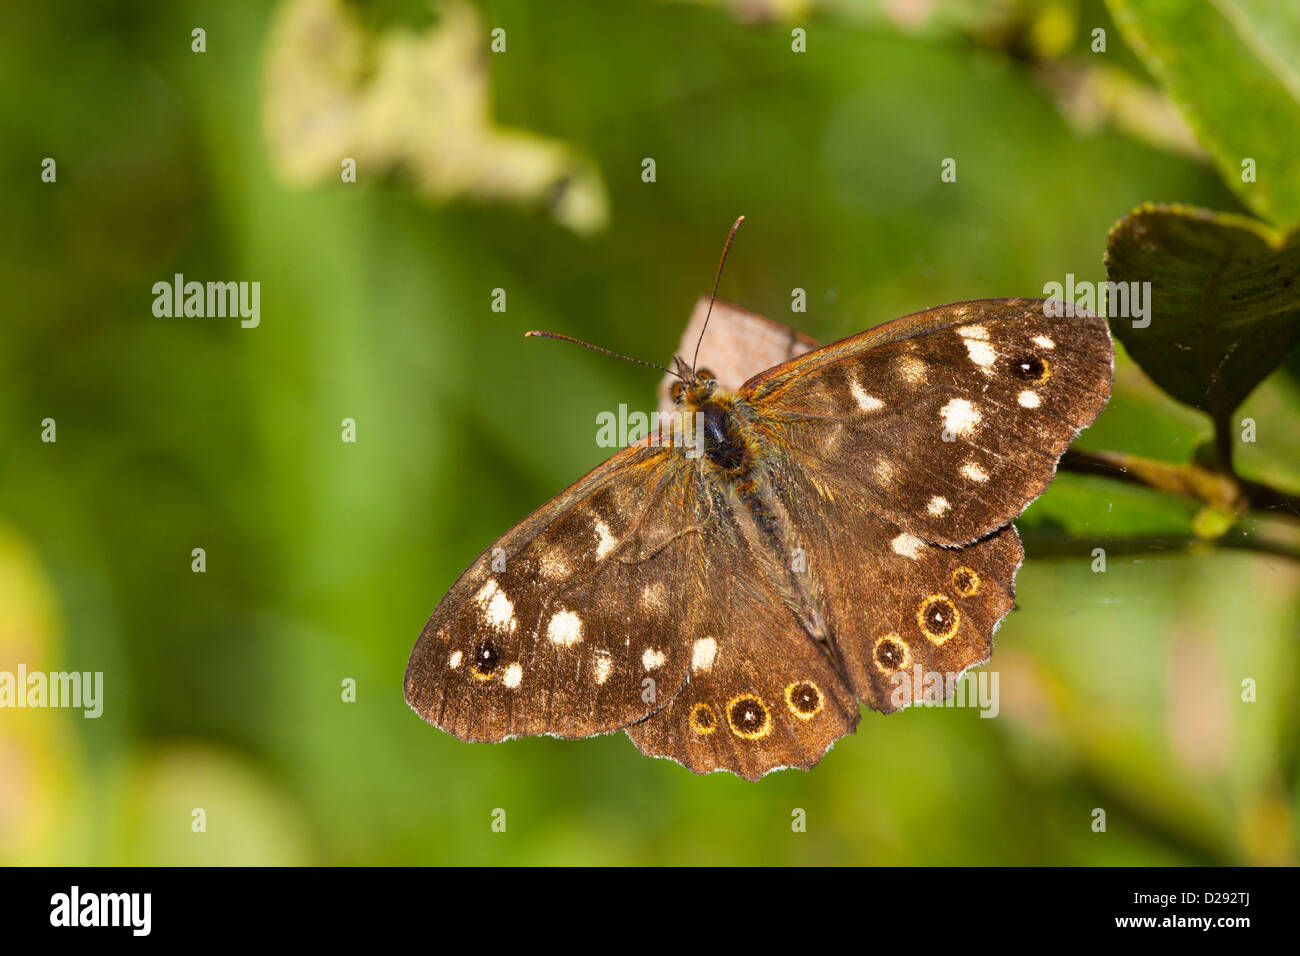 Speckled Wood Butterfly (Pararge aegeria). Woodwalton Fen NNR. Cambridgeshire, England. September. - Stock Image